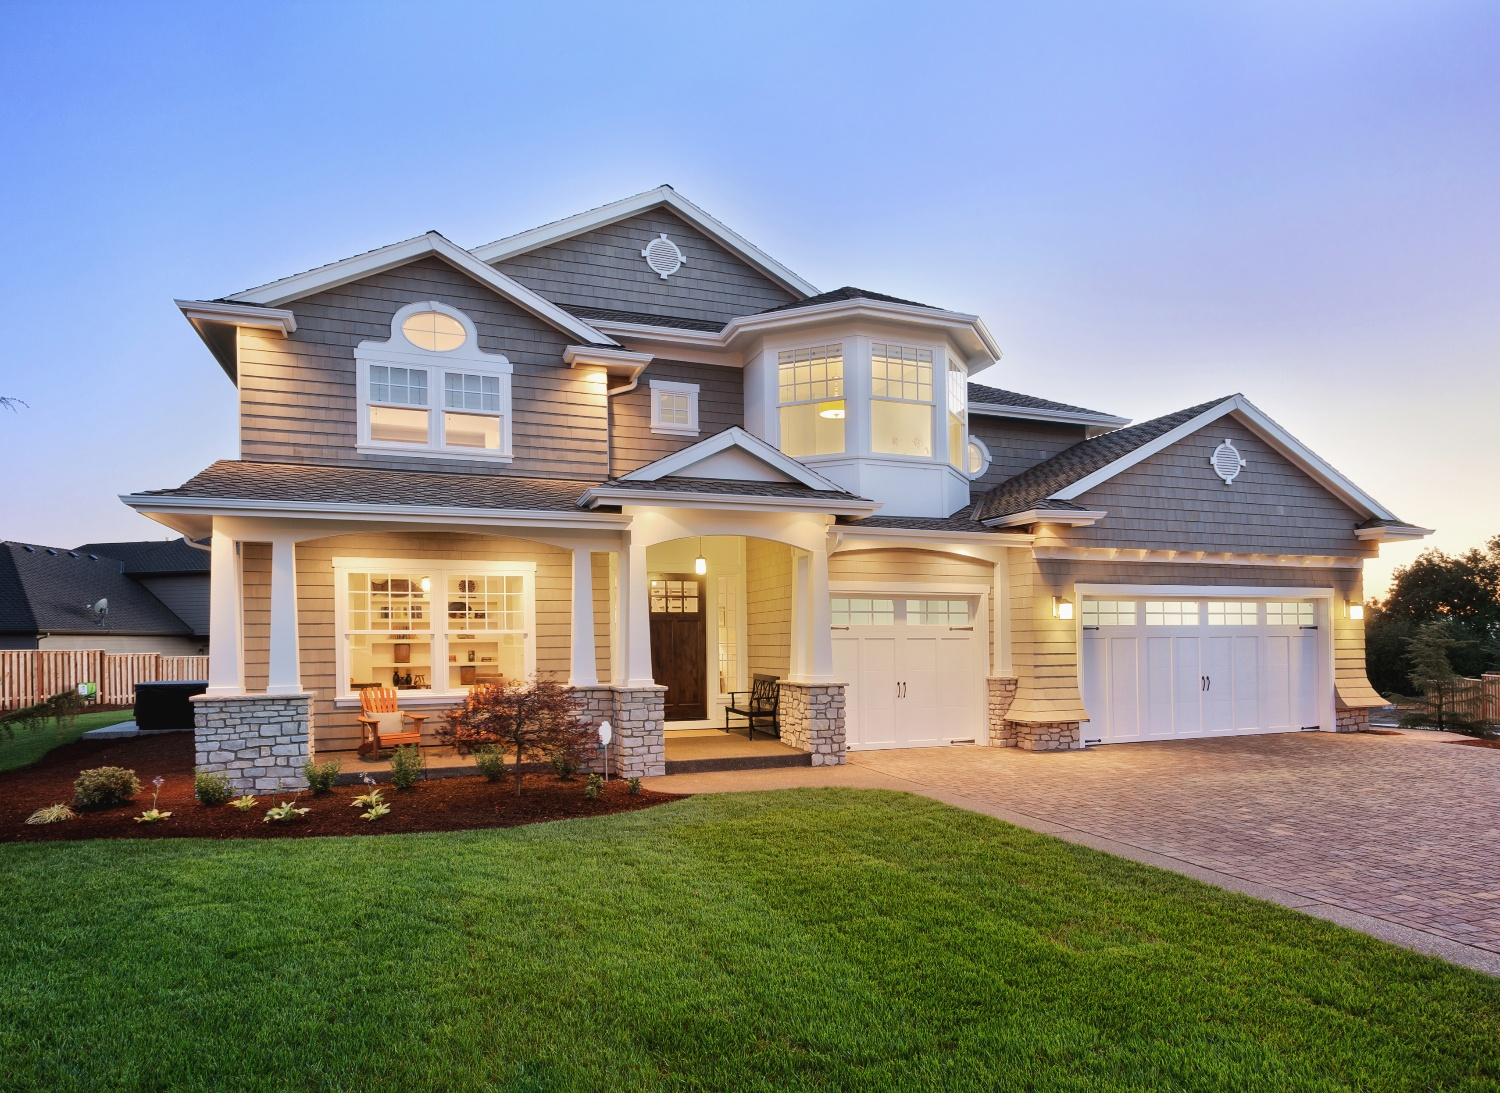 Glasshouse Real Estate Sell a Home